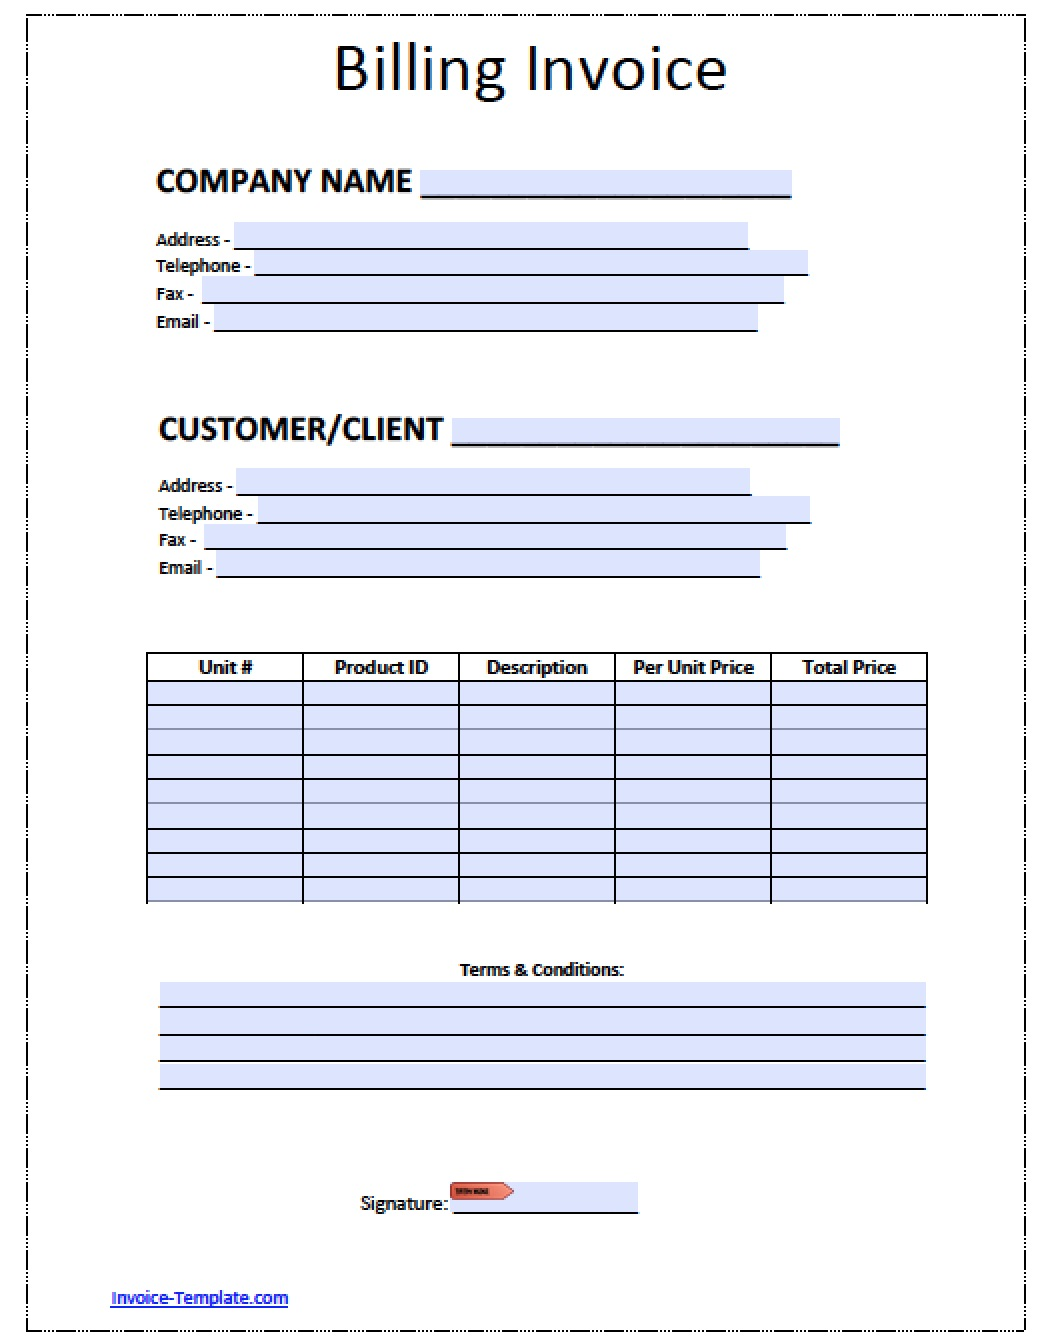 Free billing invoice template excel pdf word c billing invoice template word pdf thecheapjerseys Image collections